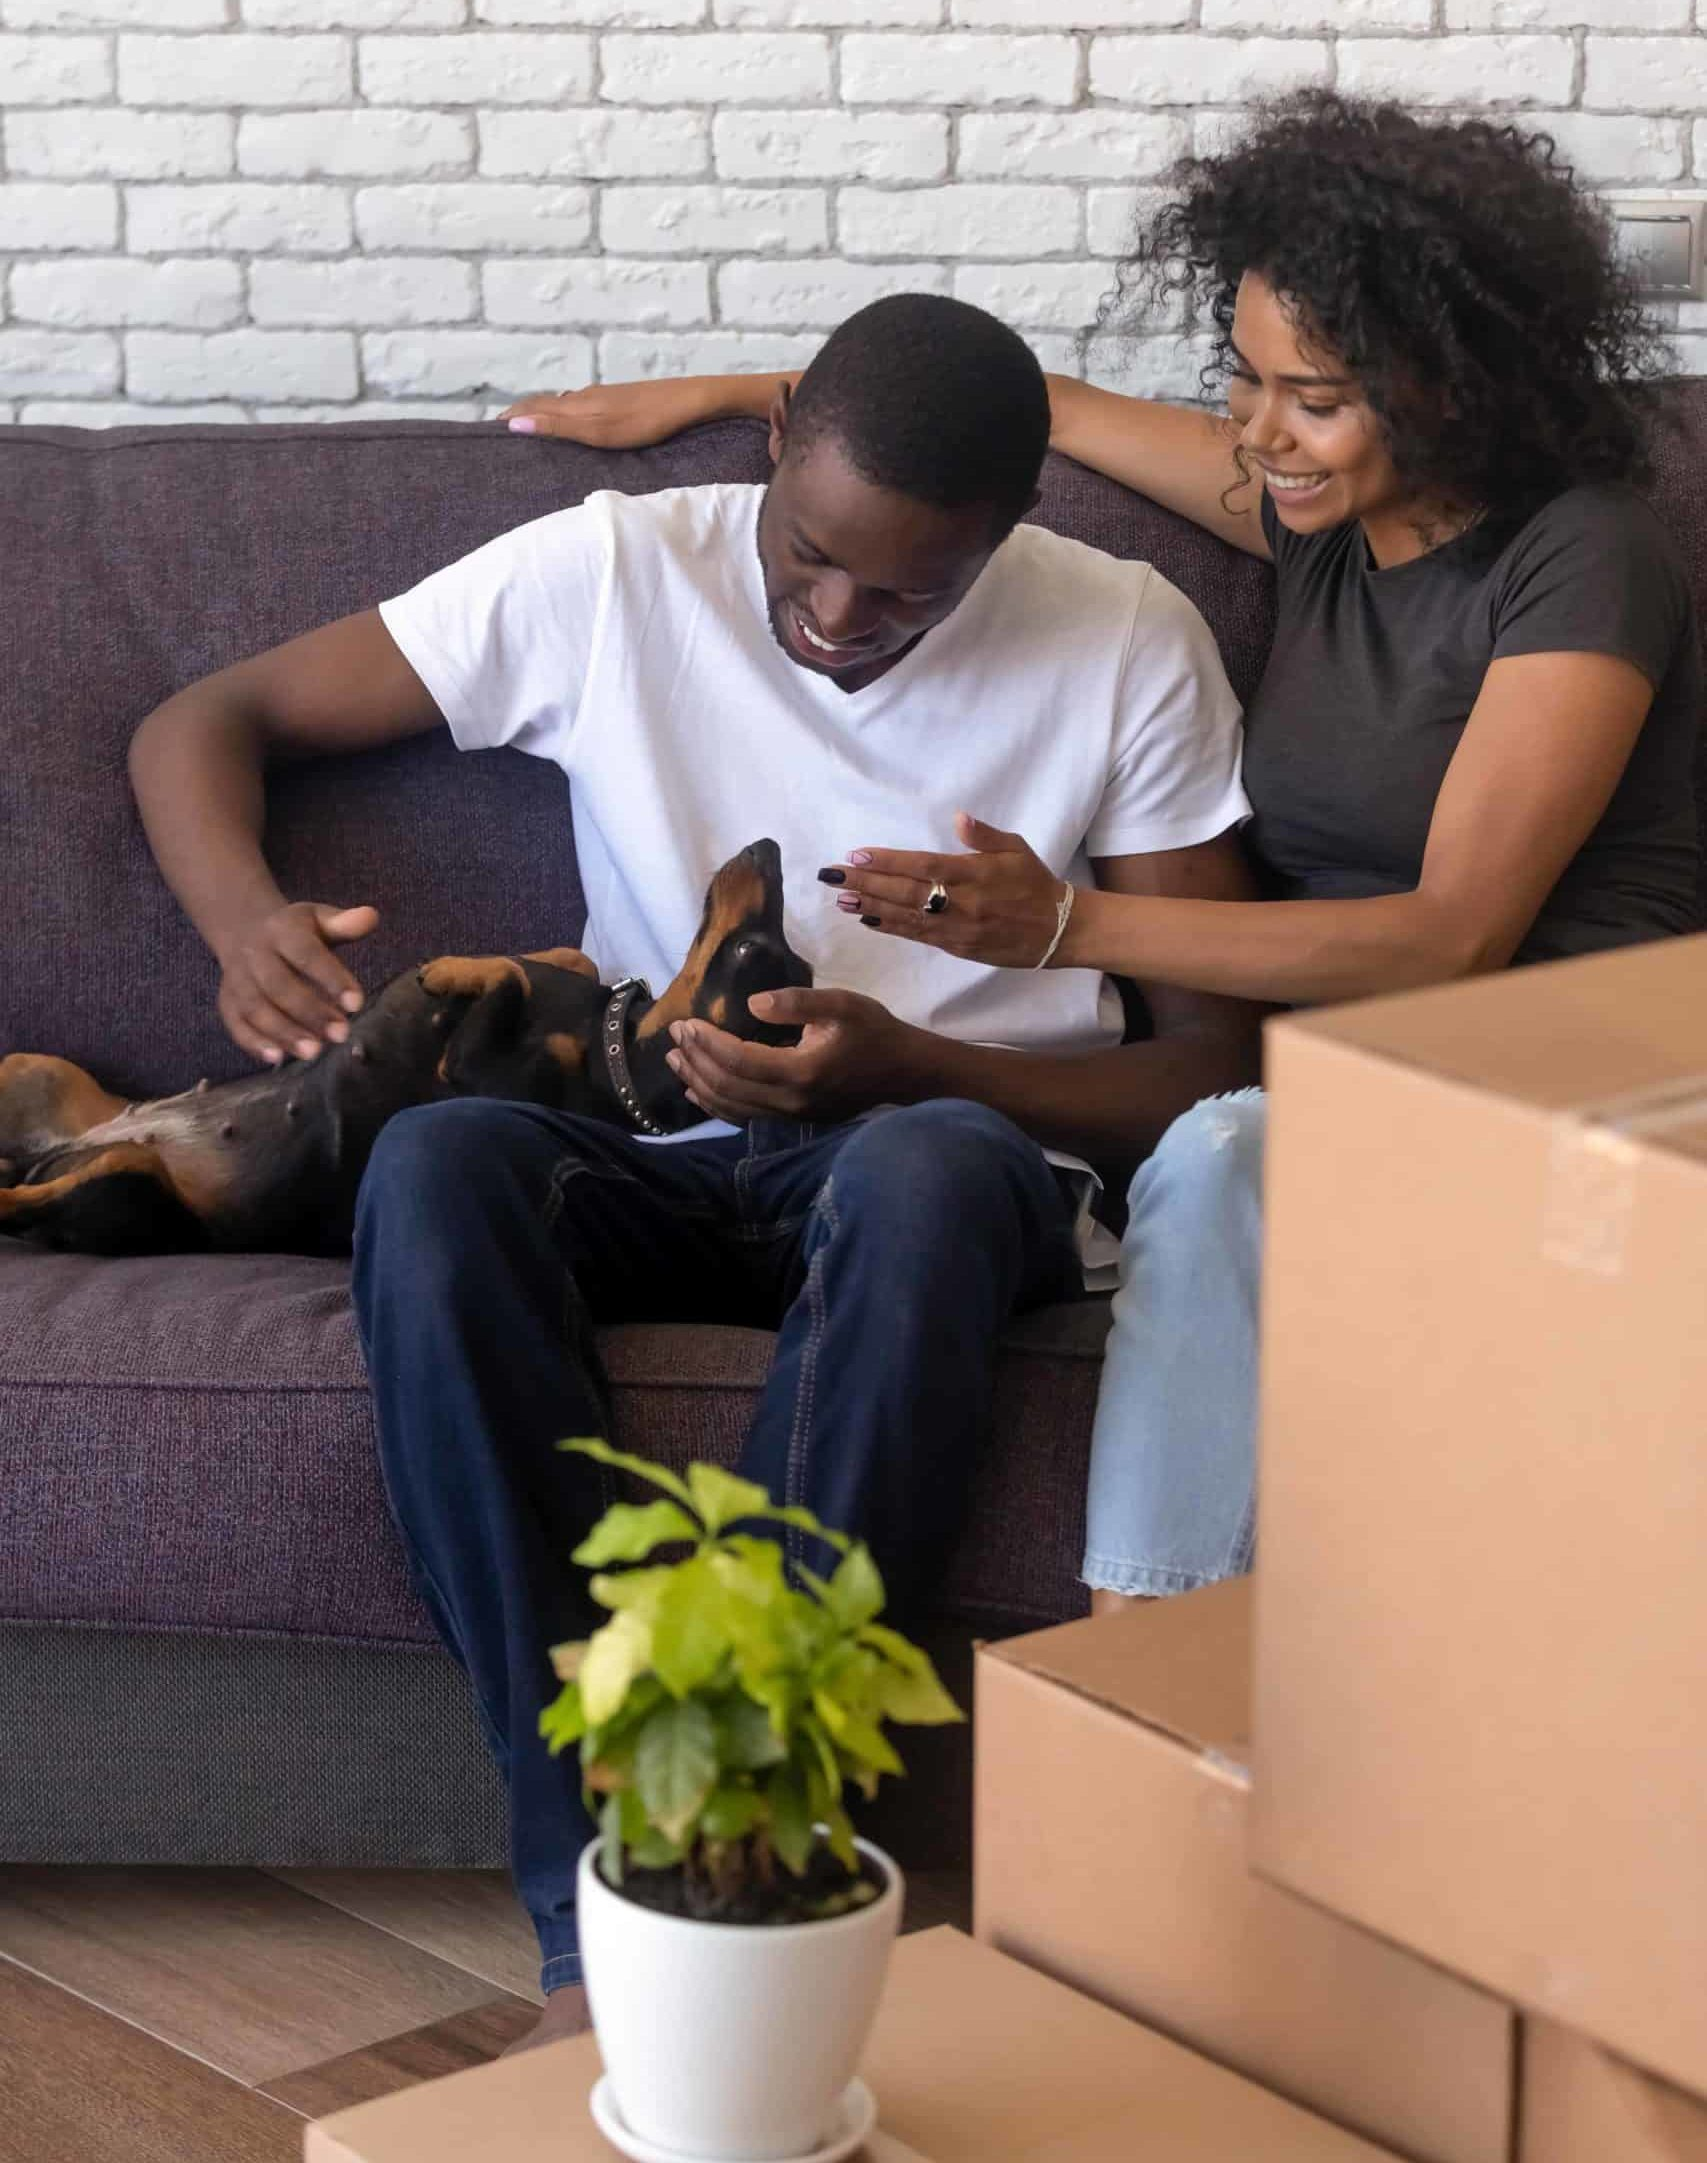 Couple sits on couch with Dachshund after moving. When renting, having all the rules explicitly stated is beneficial for all parties involved. This way, you will have a clear list of dos and don'ts before settling in with your pets.